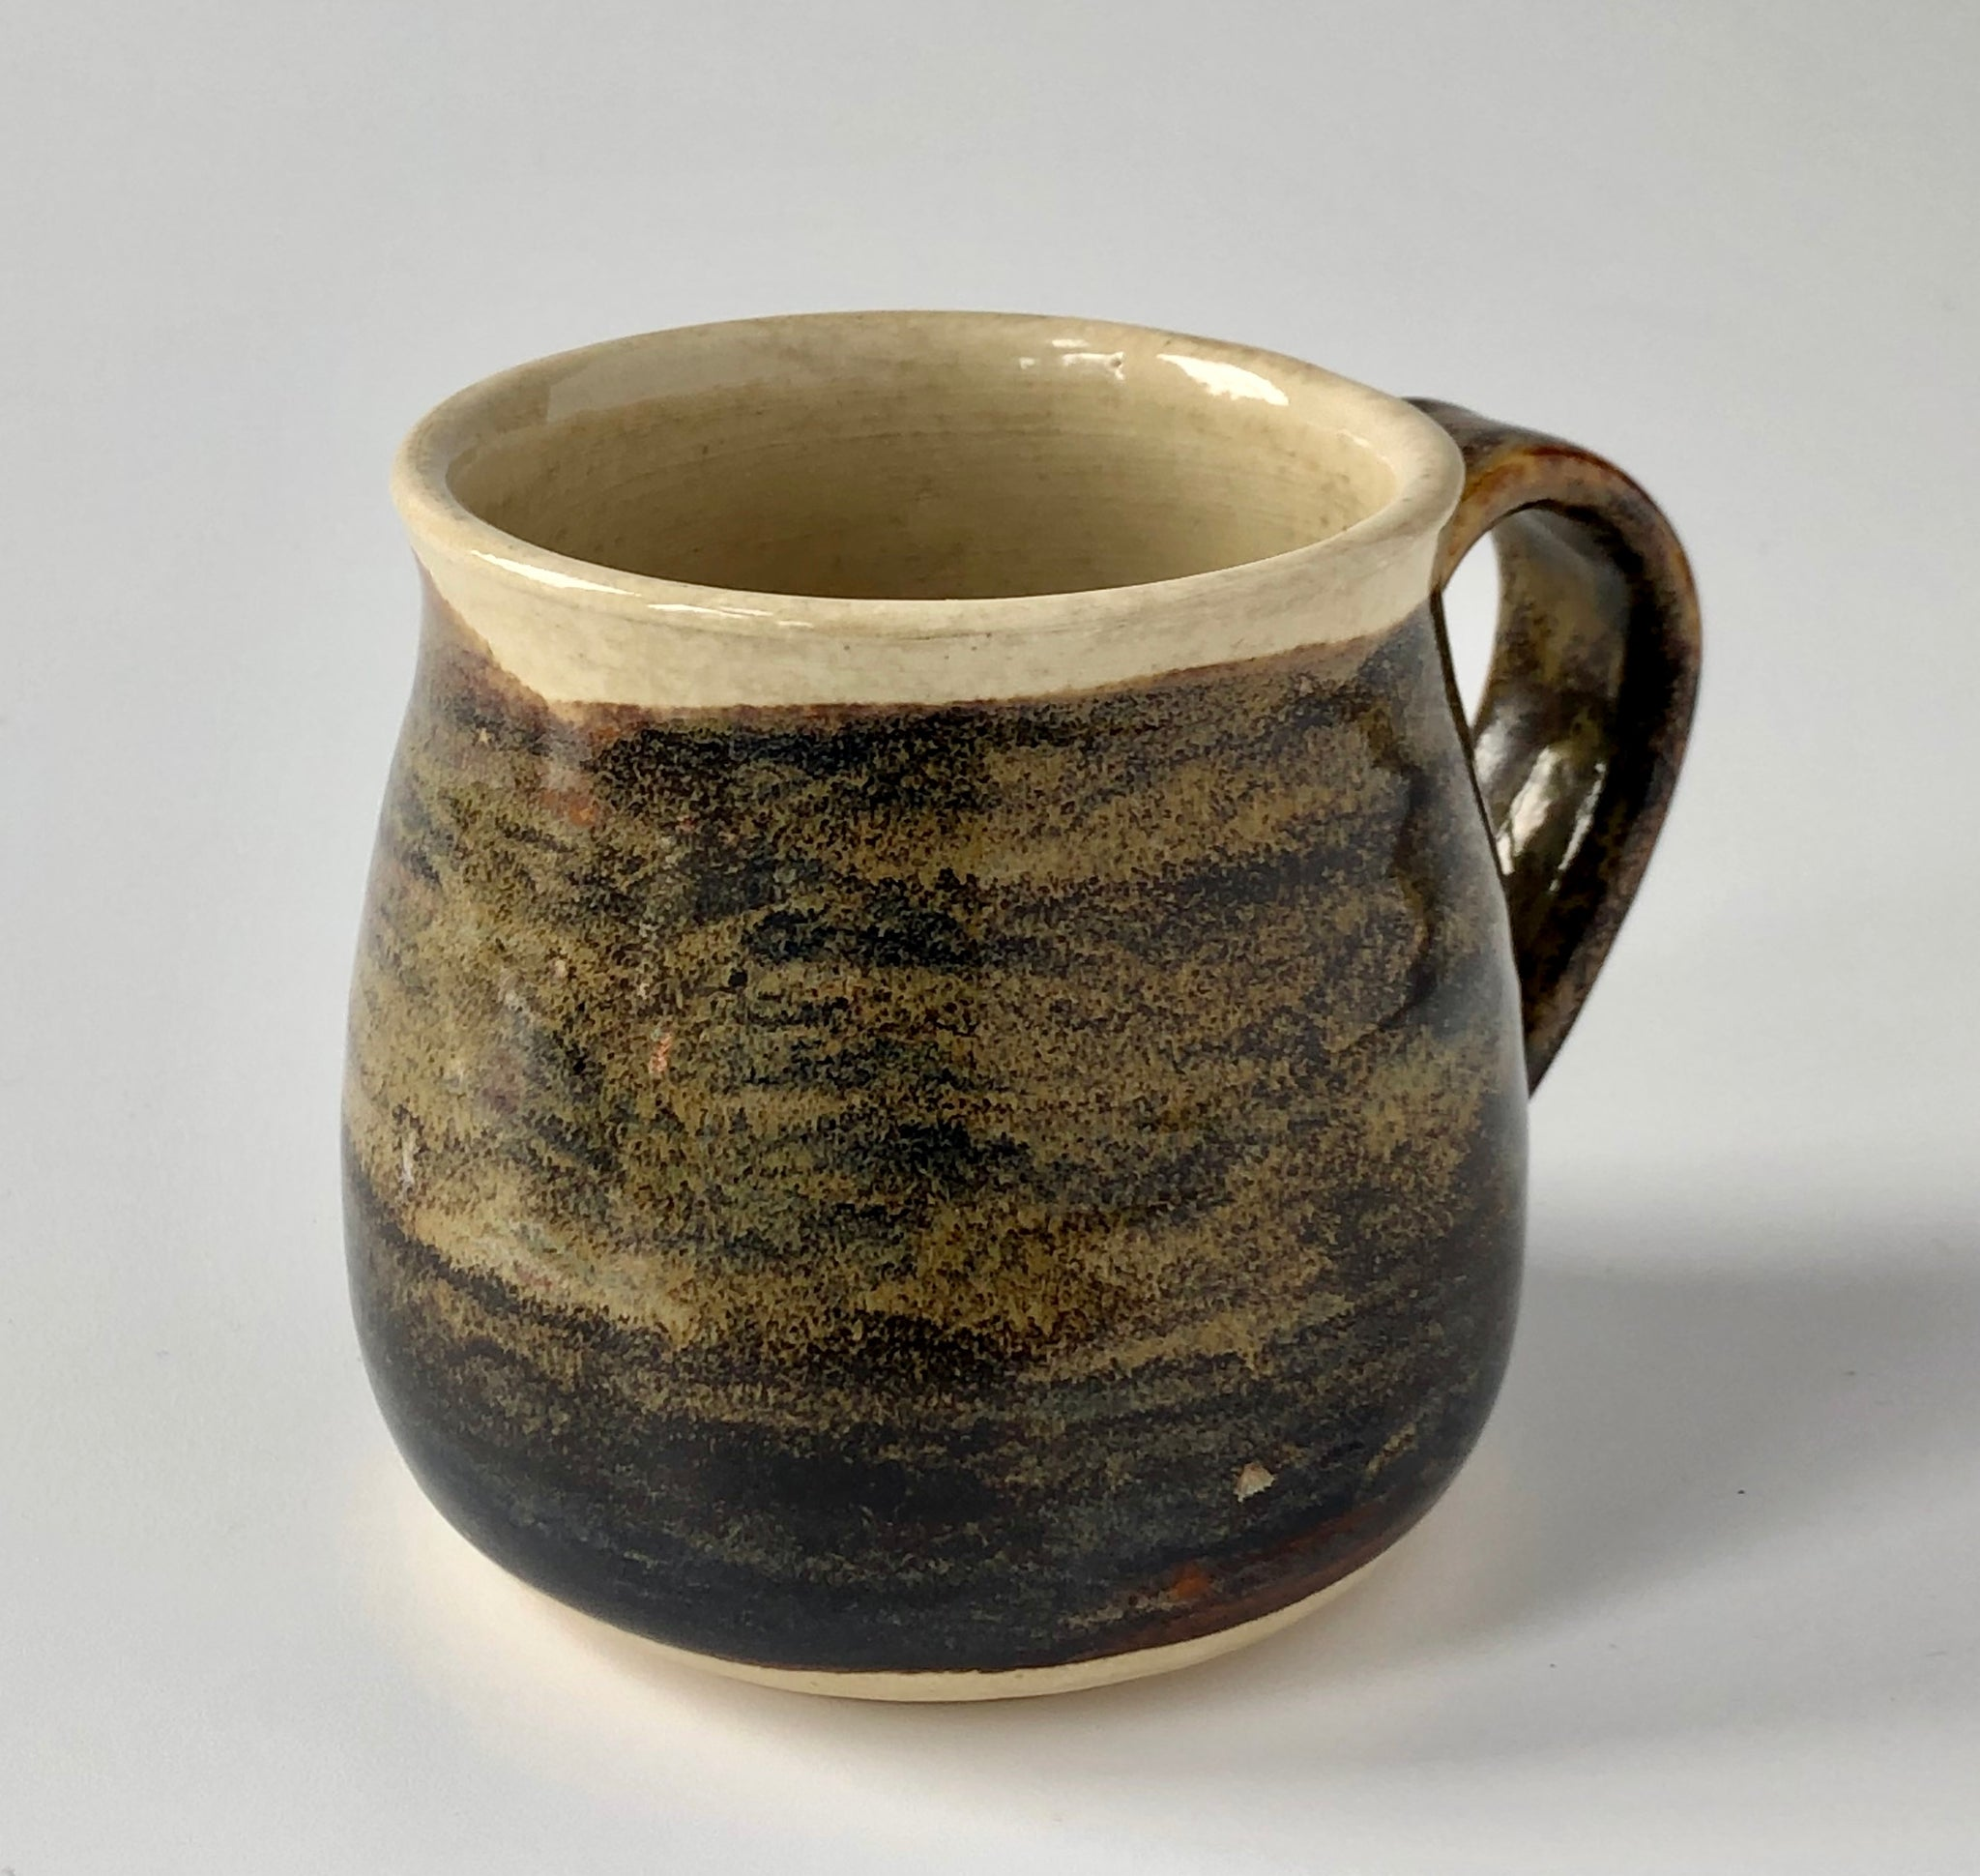 Oatmeal and Brown Glaze on Buff Stoneware Handmade Mug